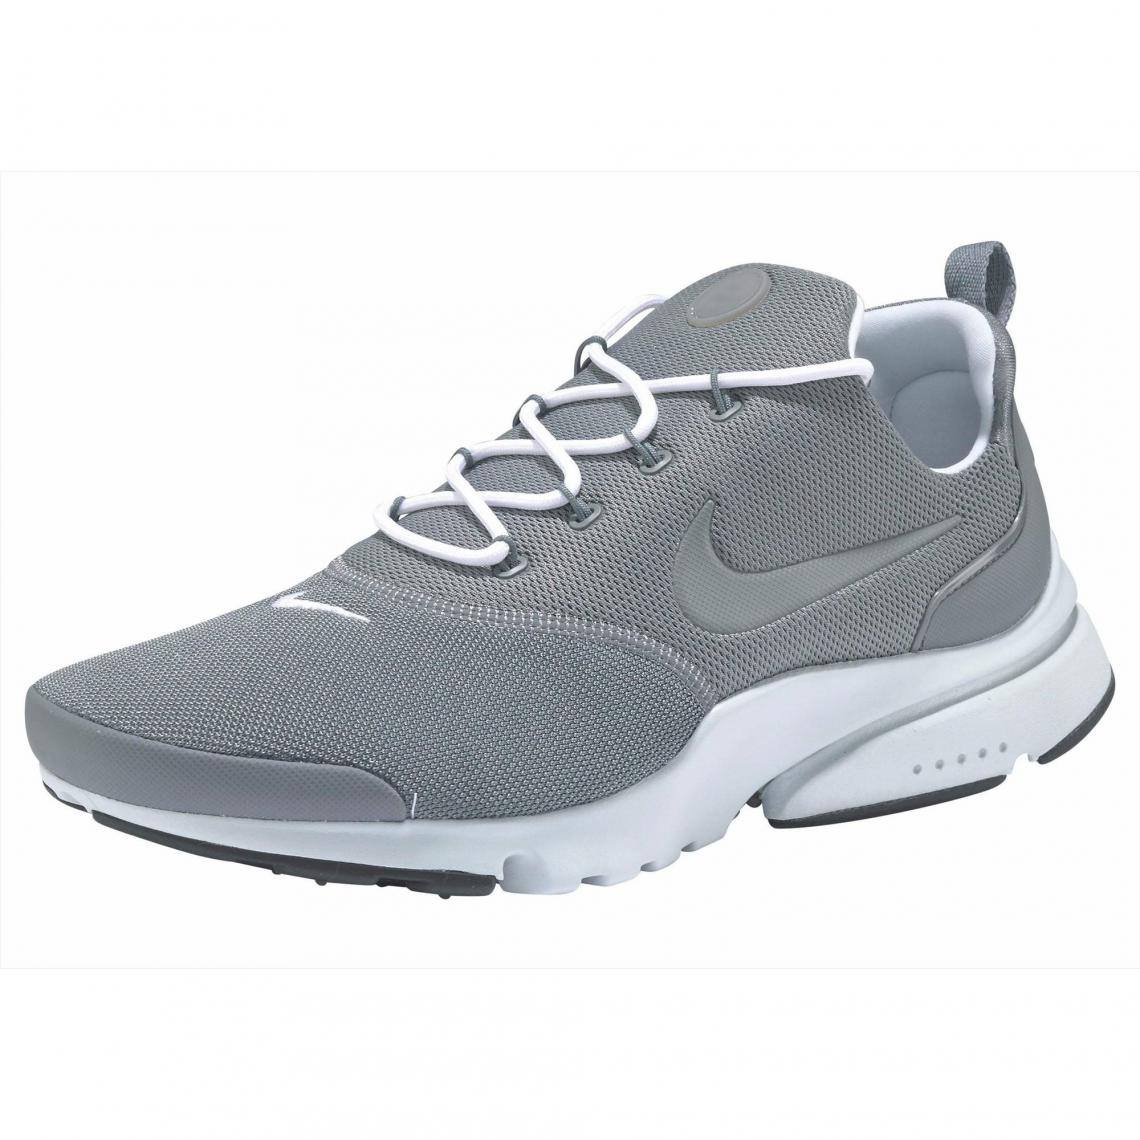 Sportswear Presto De Running Fly Nike Homme Gris Chaussures vbyYIgmf76